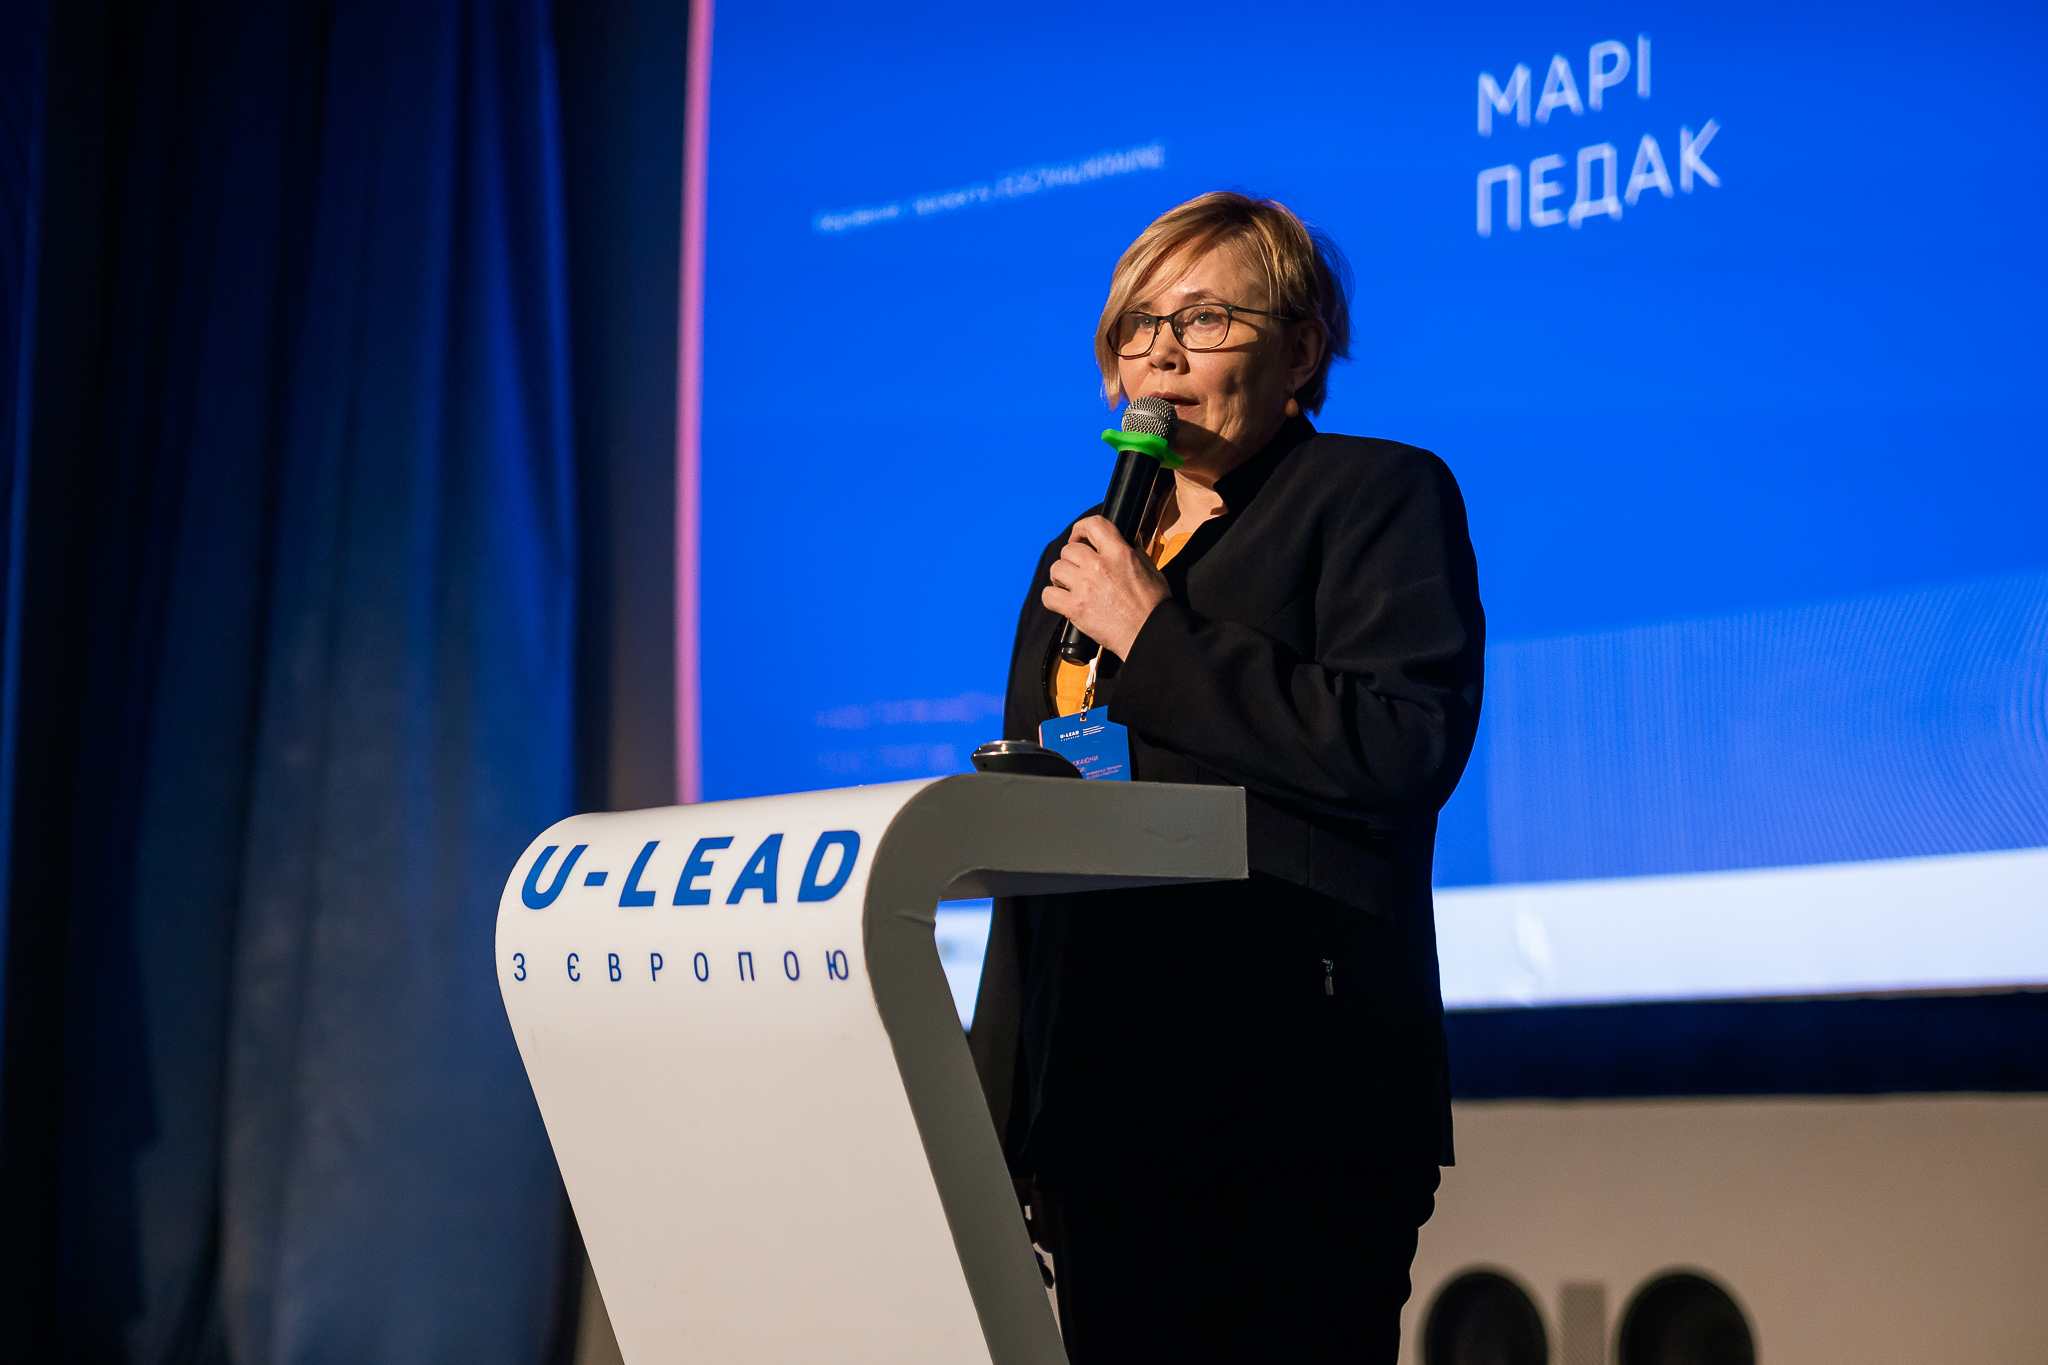 9.5 mln residents of hromadas to receive quality administrative services with support of U-LEAD with Europe Programme